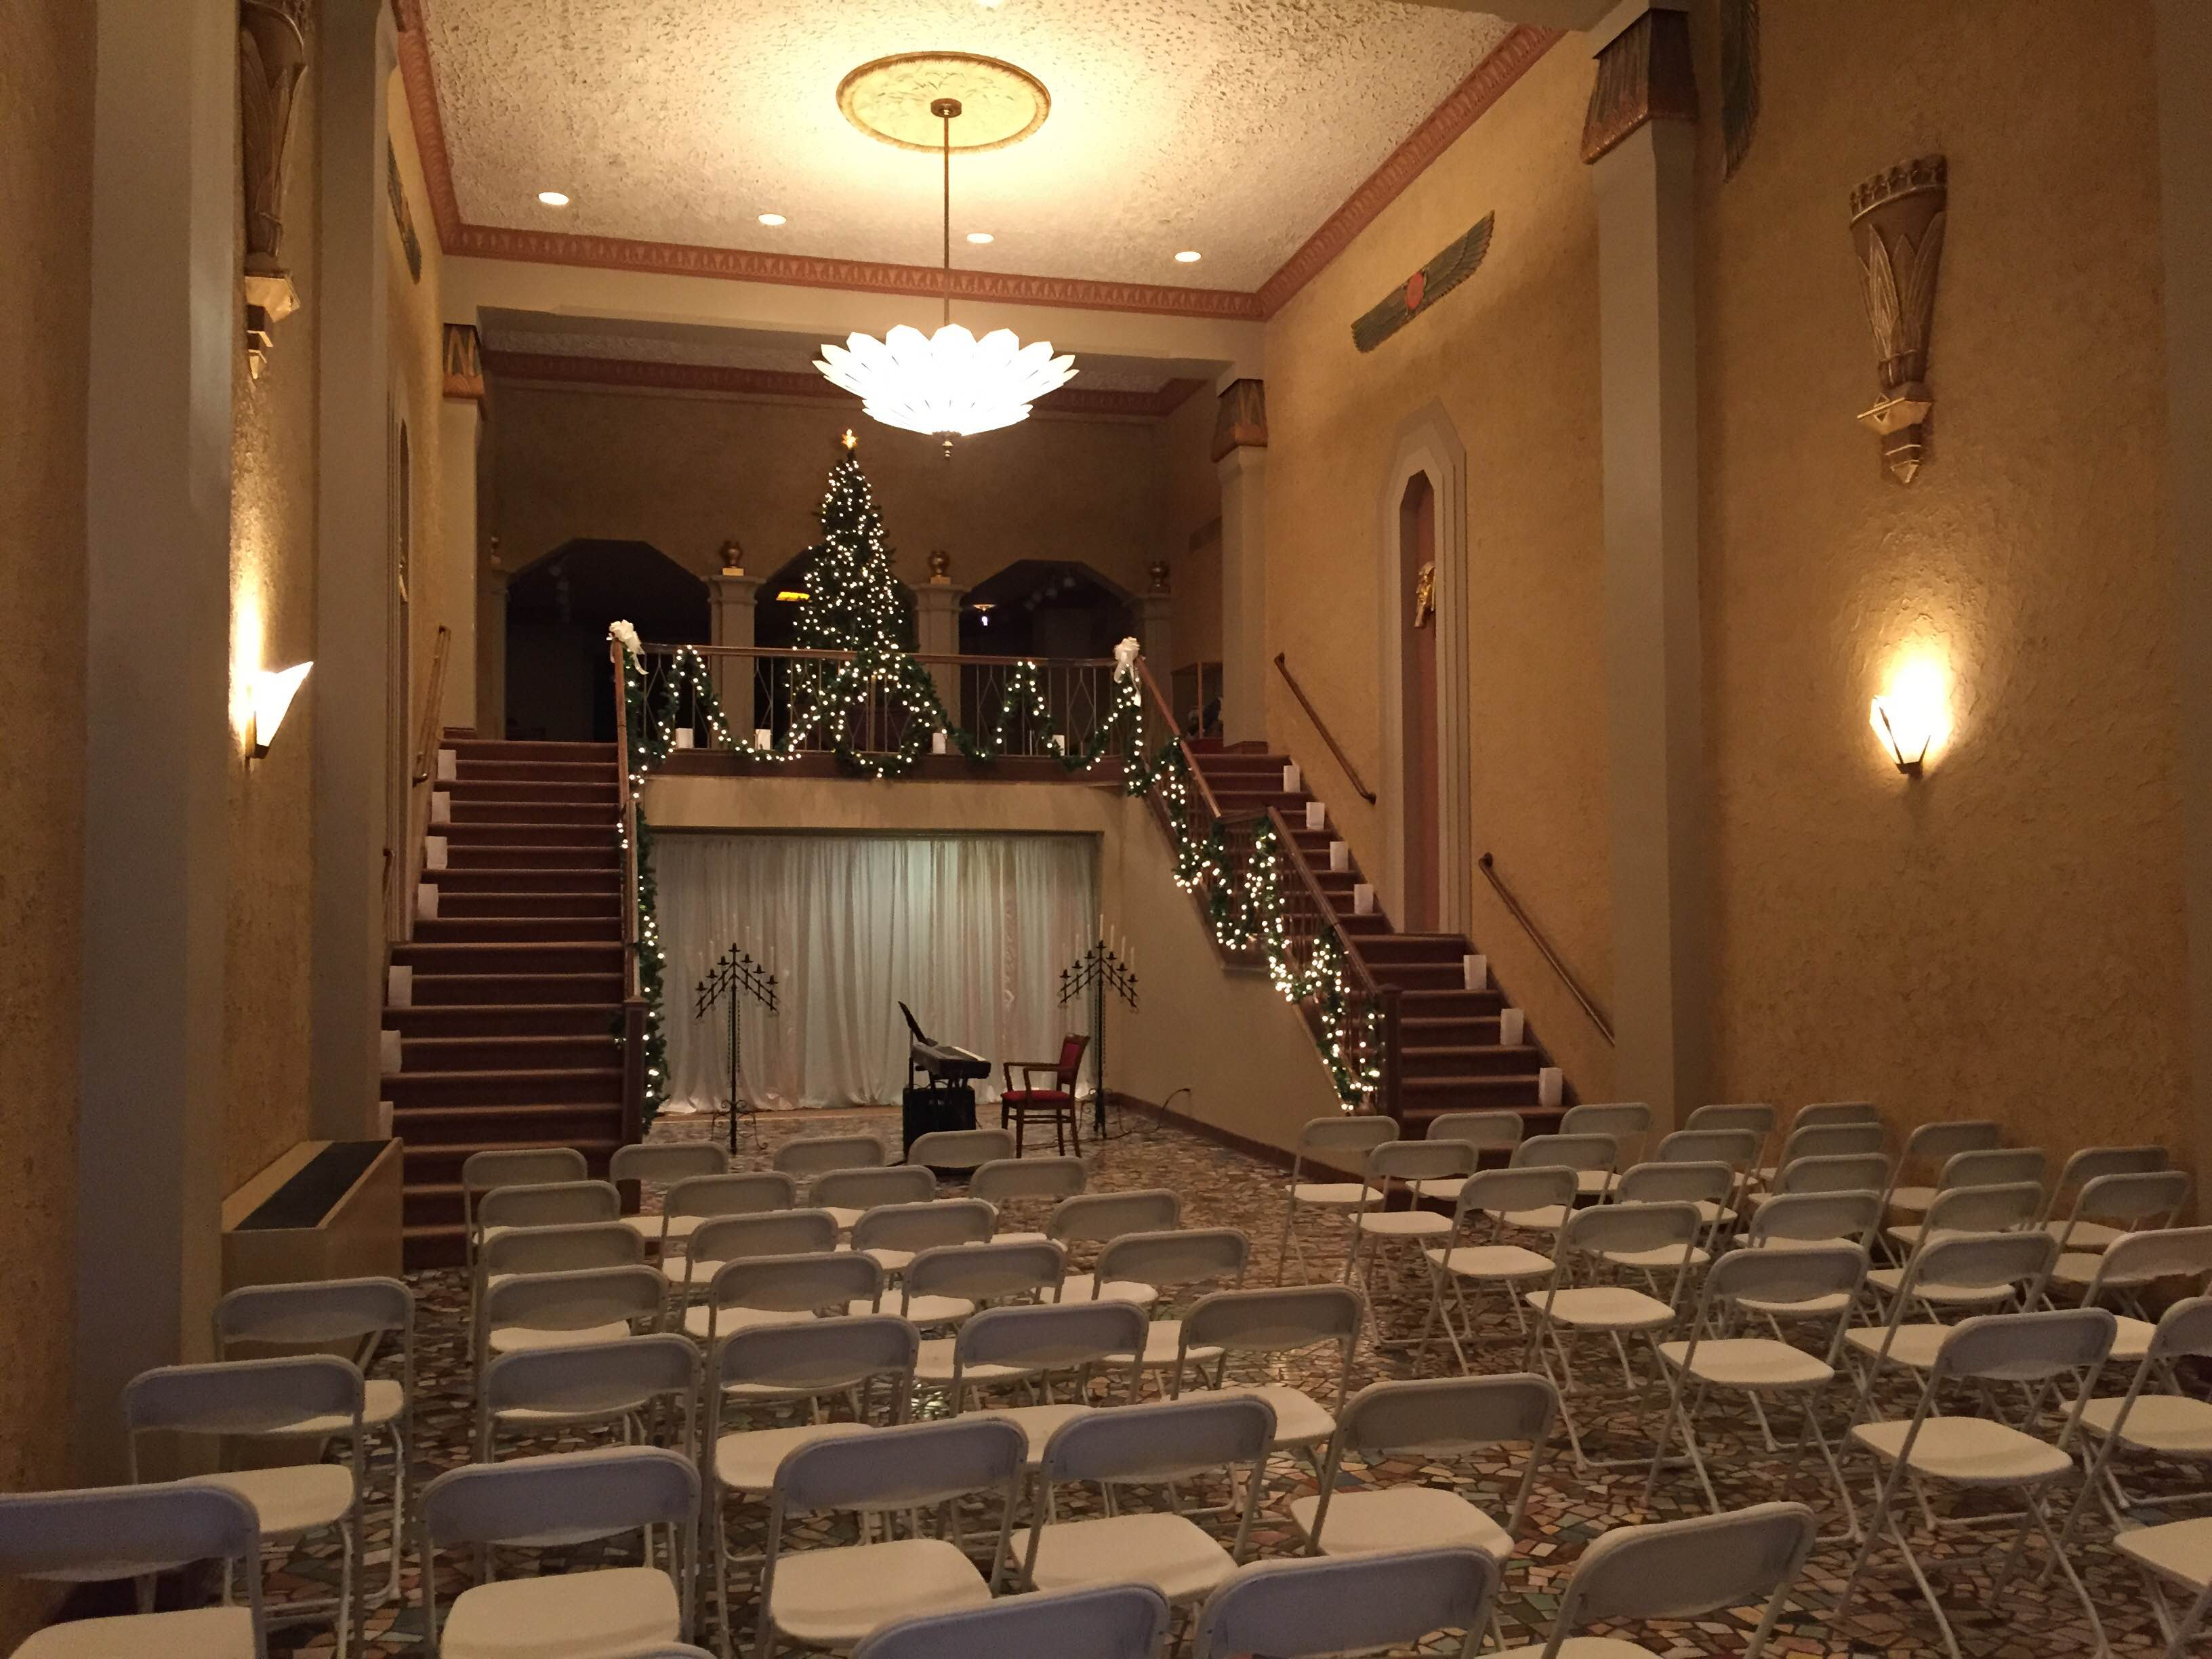 The historic egyptian theatre wedding rental wedding december 2014 junglespirit Images